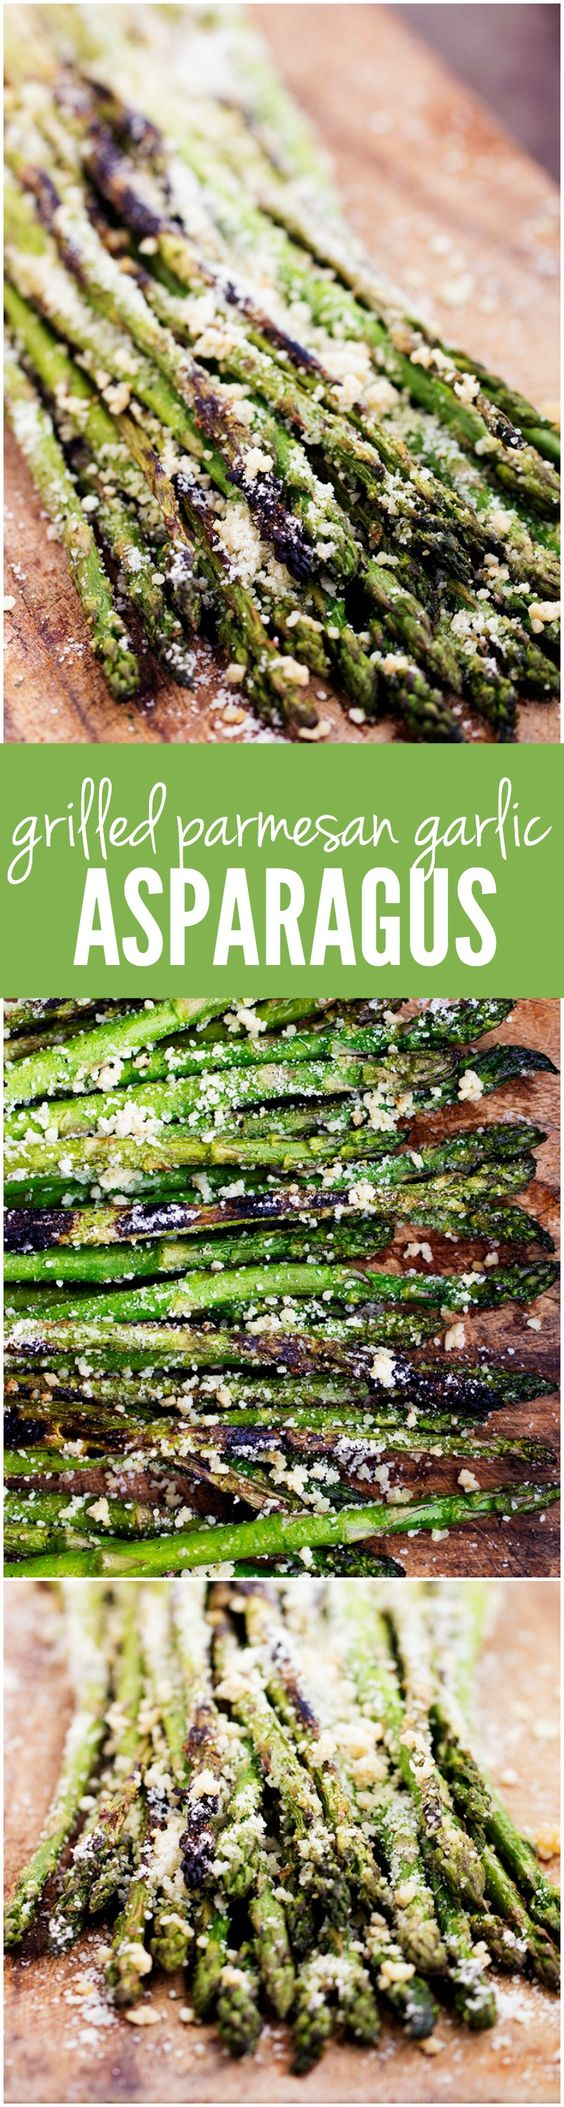 This Grilled Parmesan Garlic Asparagus Is The Best Side! The Smoky Charred  Edges Add So